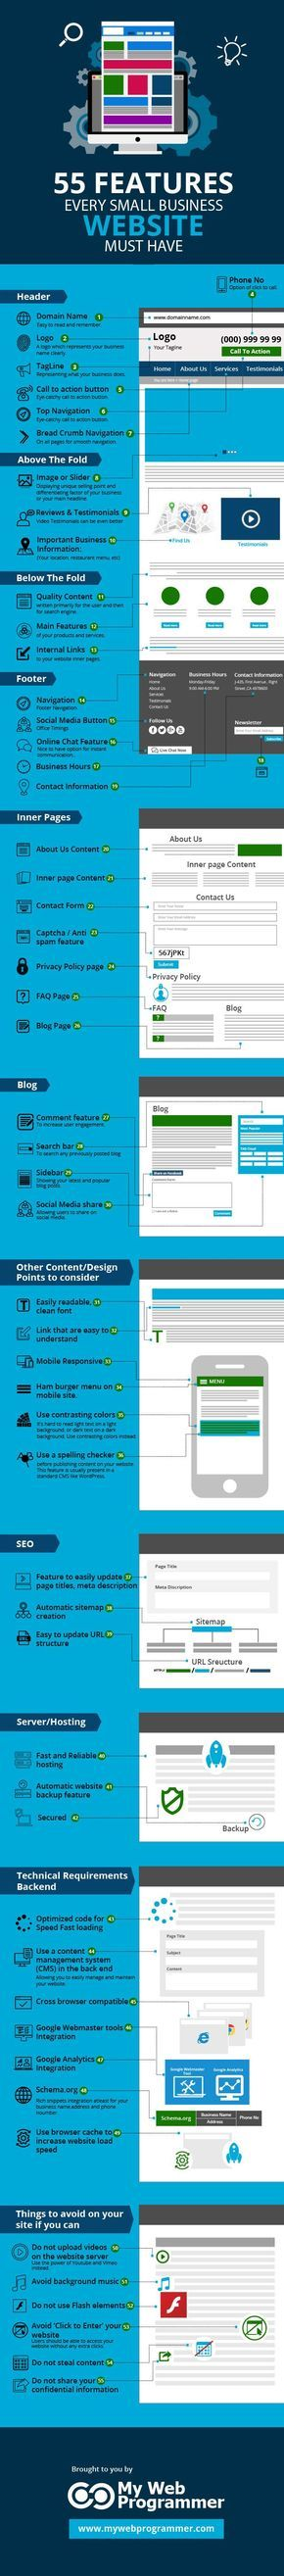 Website Features Checklist 55 Steps To Web Design Success Infographic Small Business Success Business Website Small Business Website